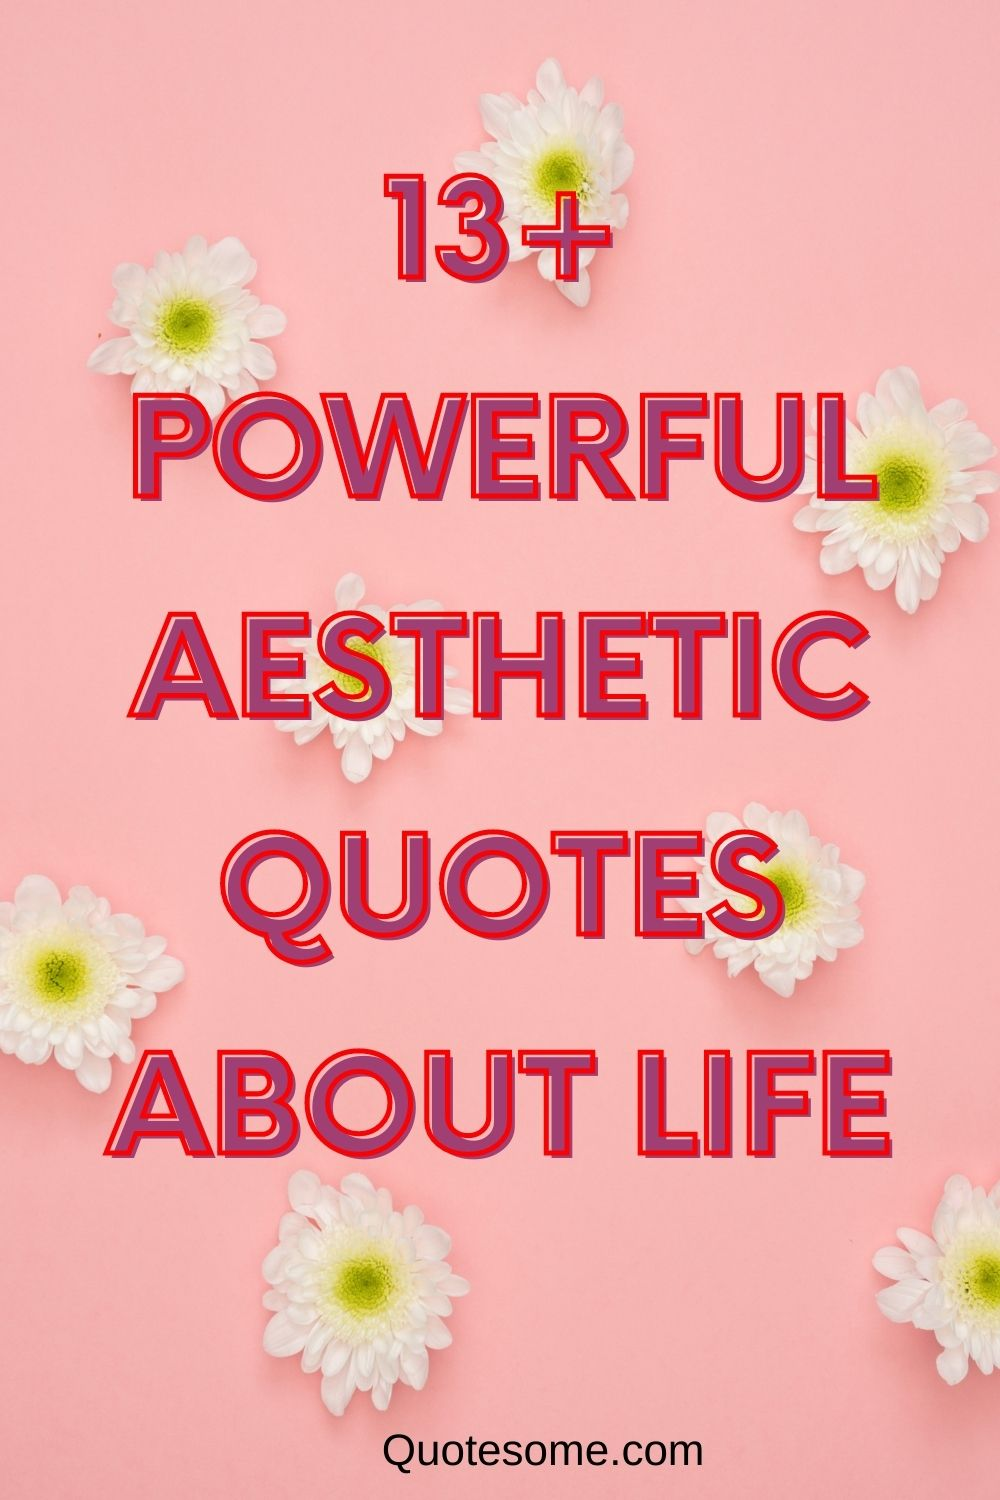 13+ POWERFUL AESTHETIC QUOTES ABOUT LIFE